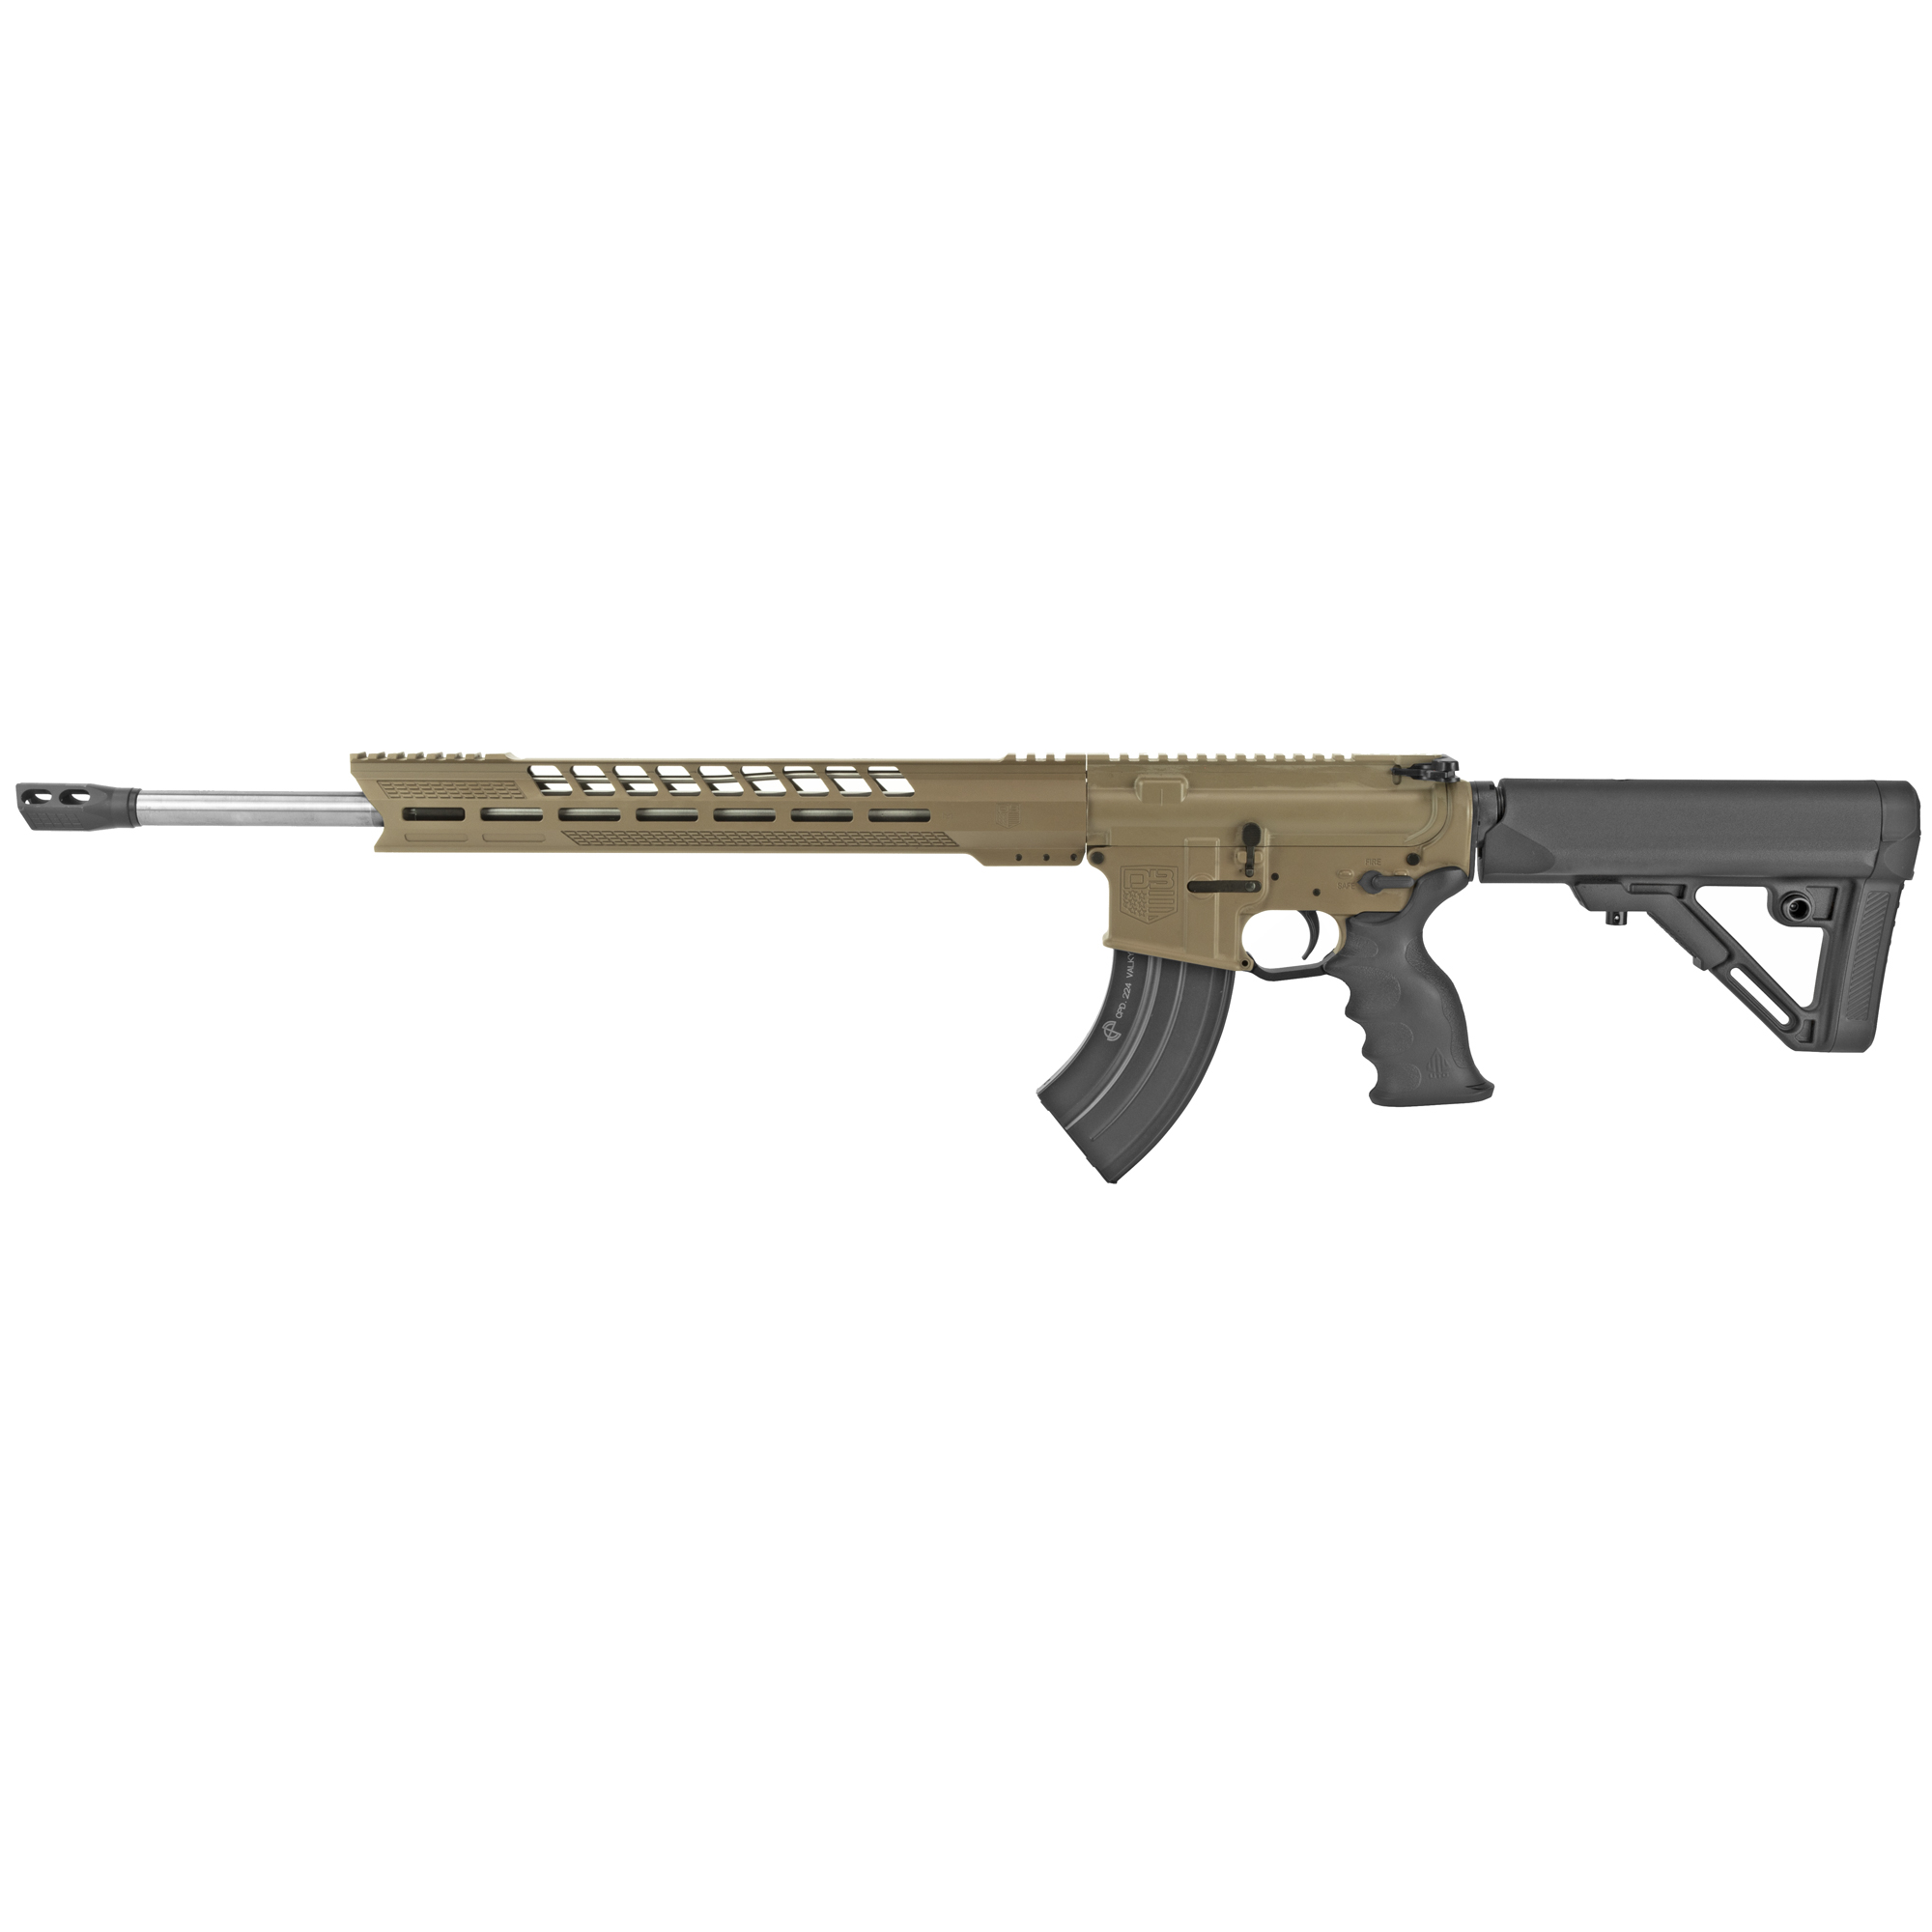 """Diamondback Firearms is proud to announce its NEW line of DB15 rifles made entirely in the USA! Starting with the tried-and-true"""" U.S. Military-proven gas-impingement system and using only the highest quality components machined in Diamondback's CNC facility. The DB15 raises the bar when it comes to features and performance when compared to others. The Diamondback DB15 represents value and versatility at a very affordable price."""